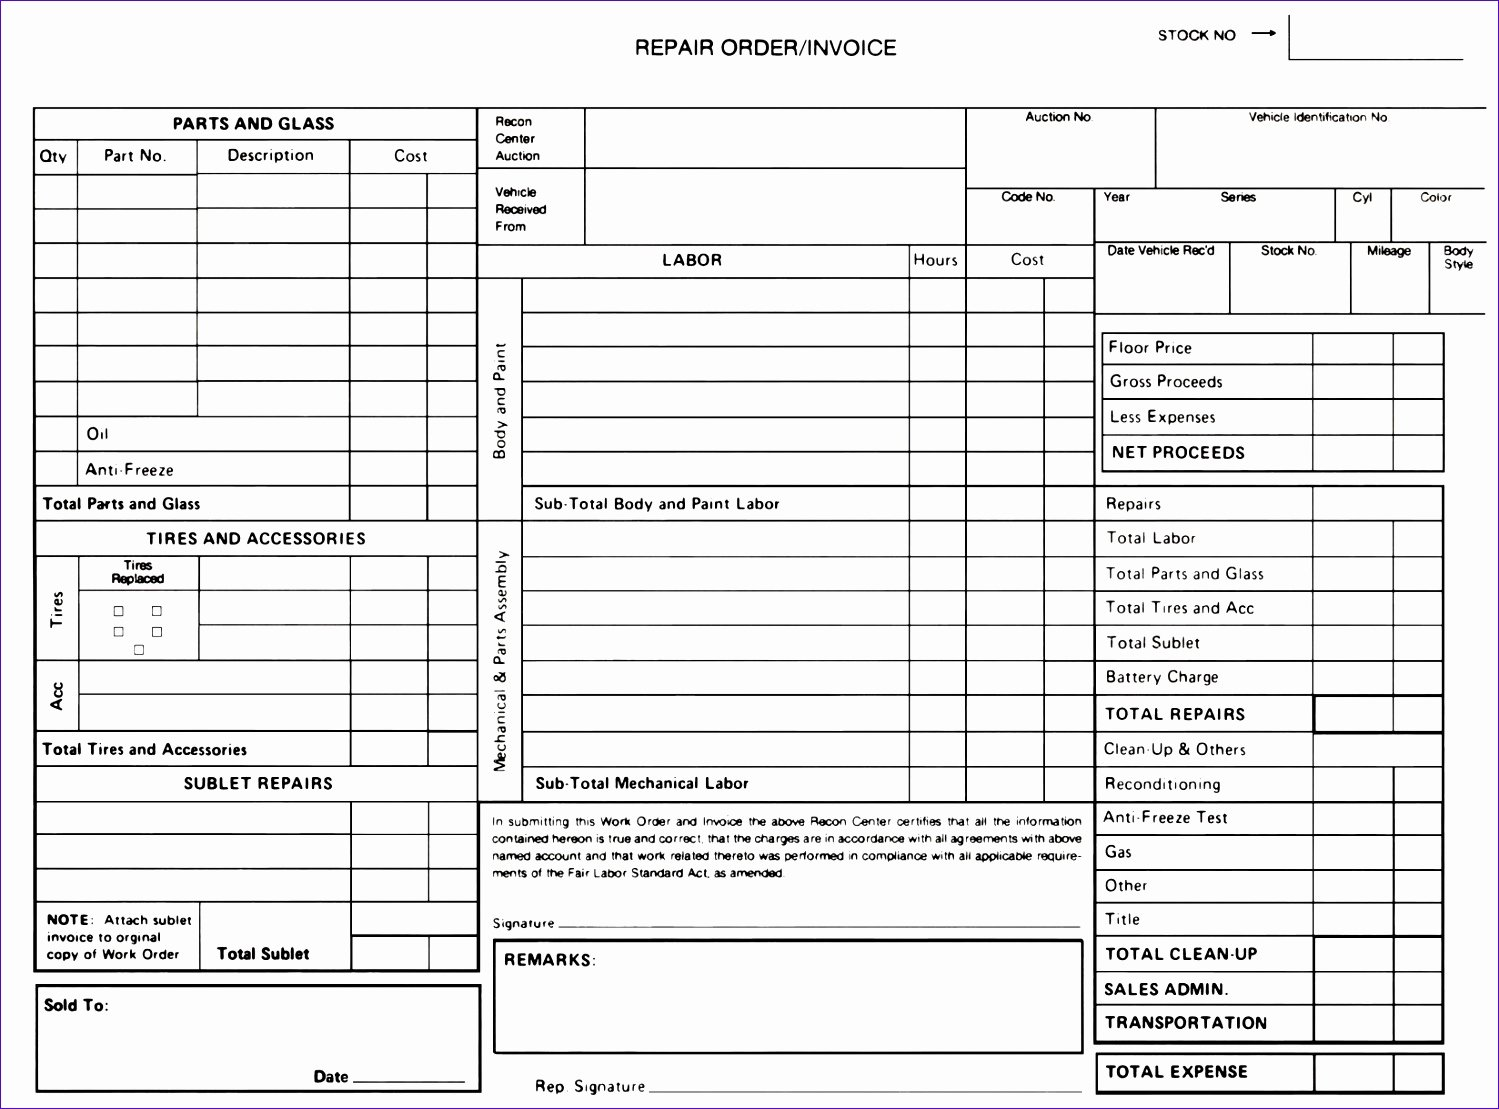 Auto Repair form Template Luxury 6 Free Auto Repair Invoice Template Excel Exceltemplates